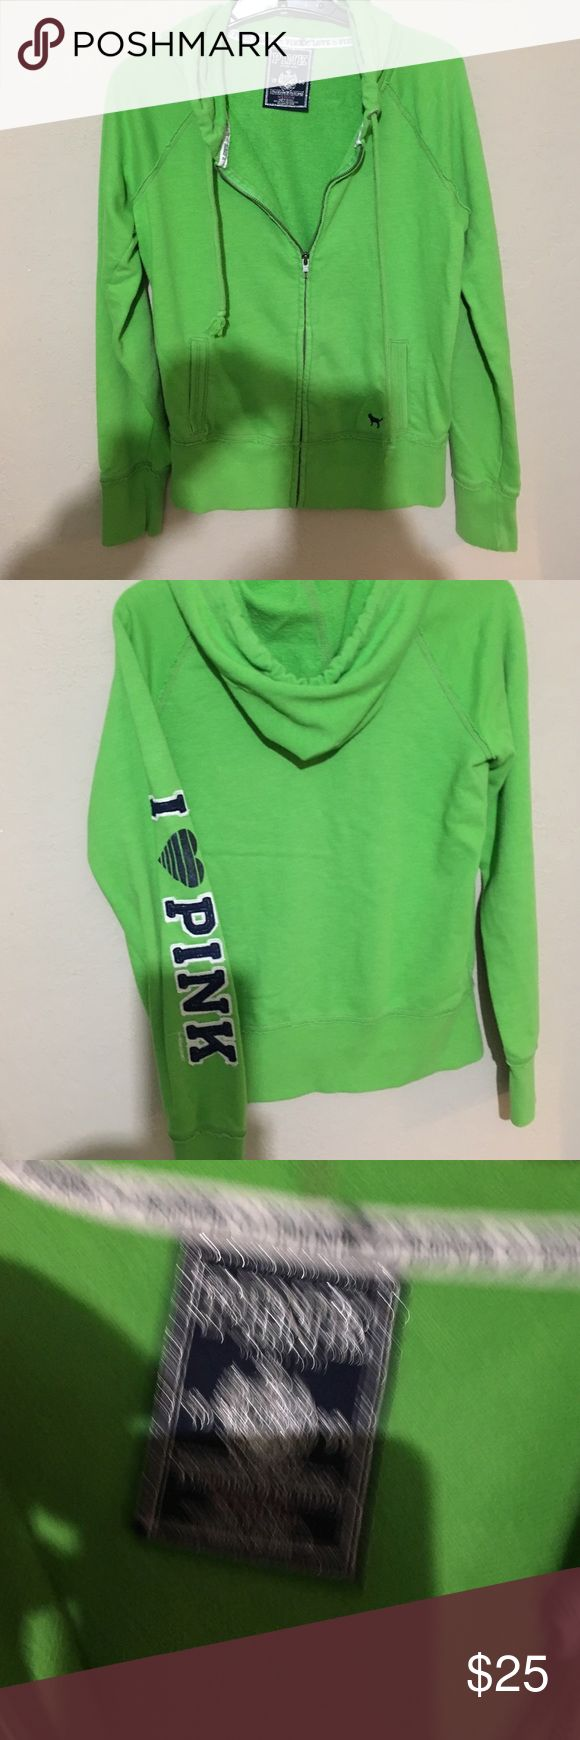 Victoria Secret Pink size medium green zip-up Long sleeve Size medium bright green zip-up hoodie. Victoria Secret Pink no rip, stains or flaws. Just don't wear anymore. Super cute 😊. Make me an offer no under bids please. PINK Victoria's Secret Tops Sweatshirts & Hoodies